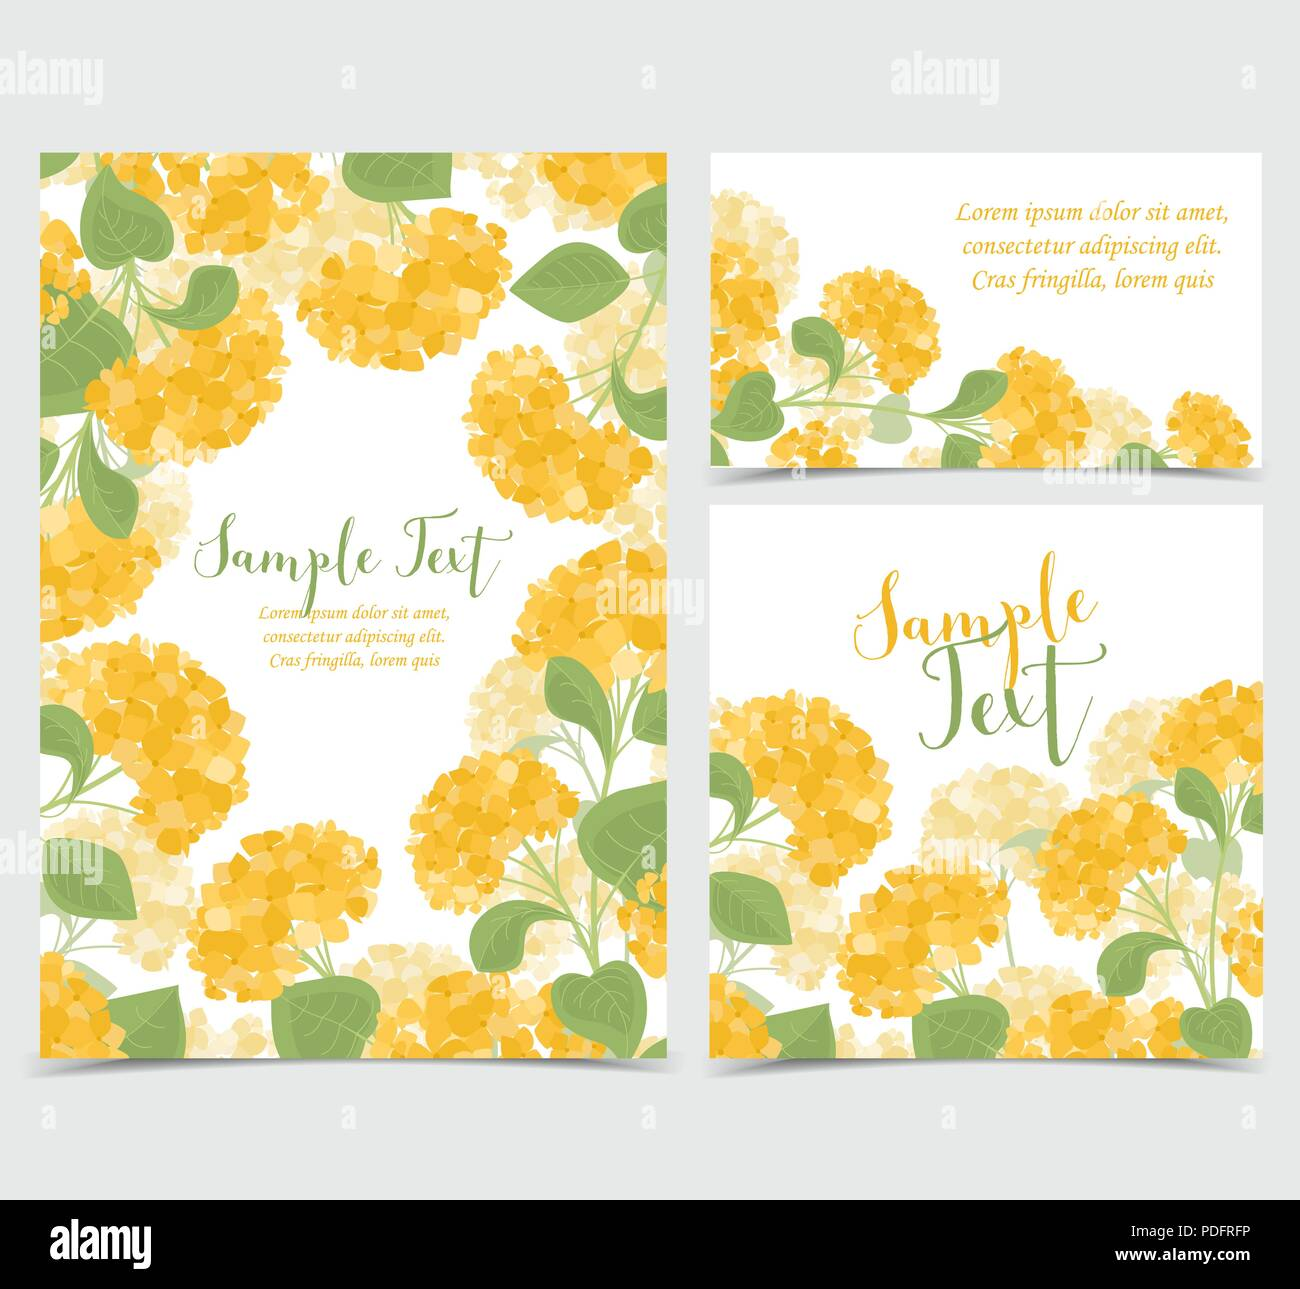 set vector illustration of hydrangea flower background with yellow